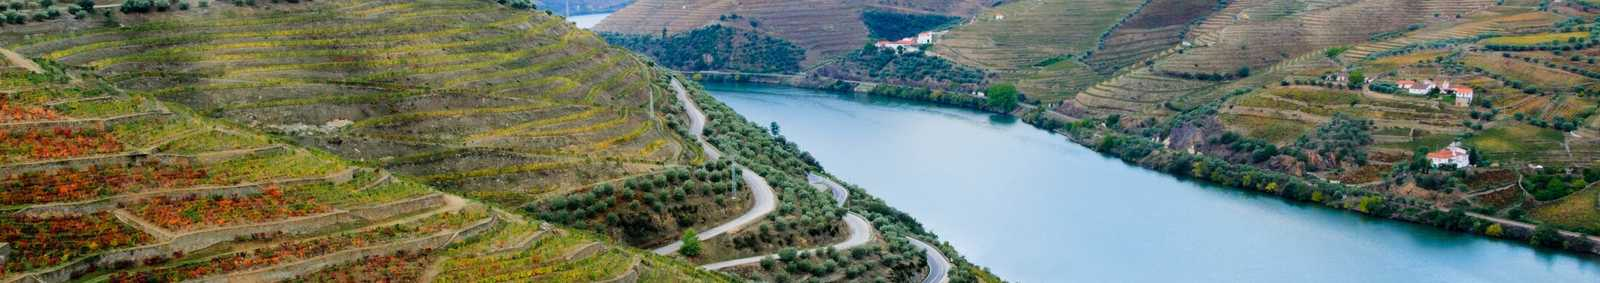 Terraced vineyards in autumn in the Douro Valley